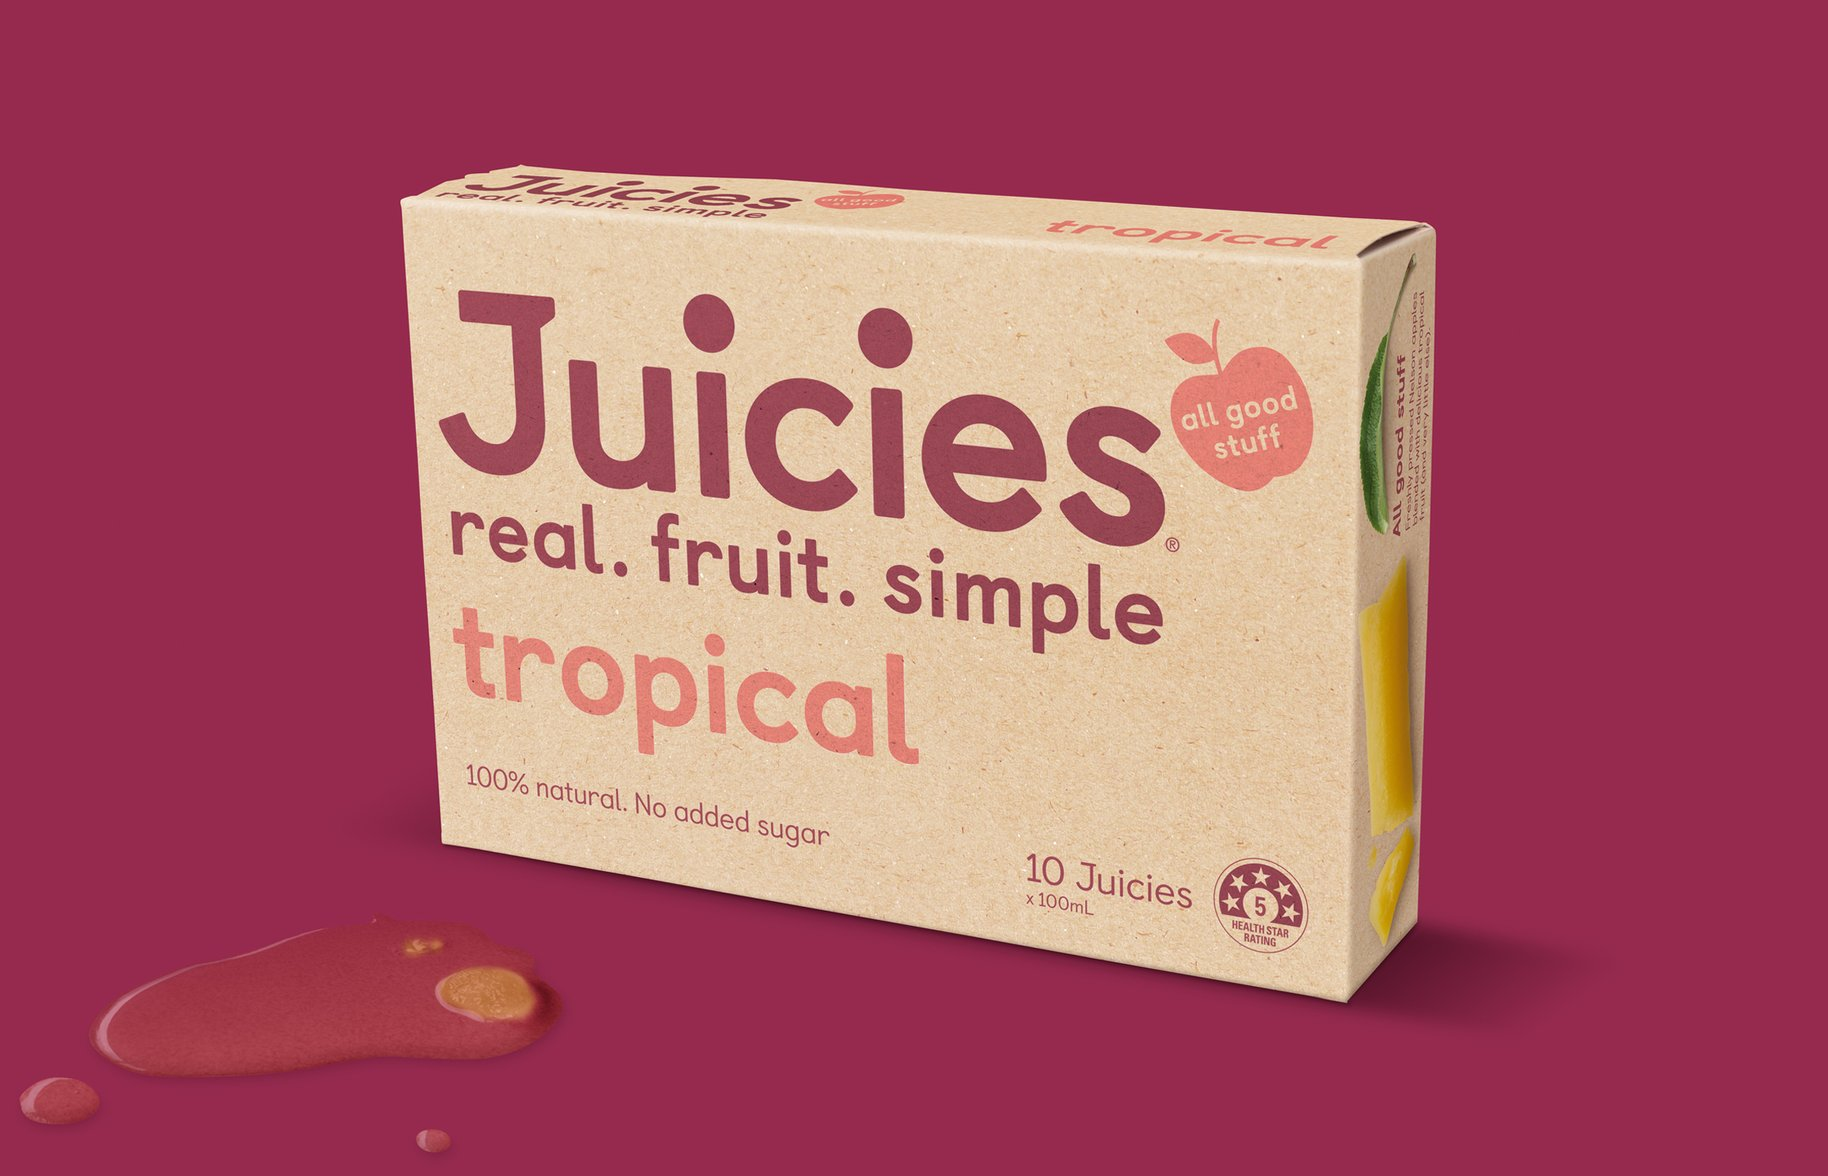 Juicies Tropical Box